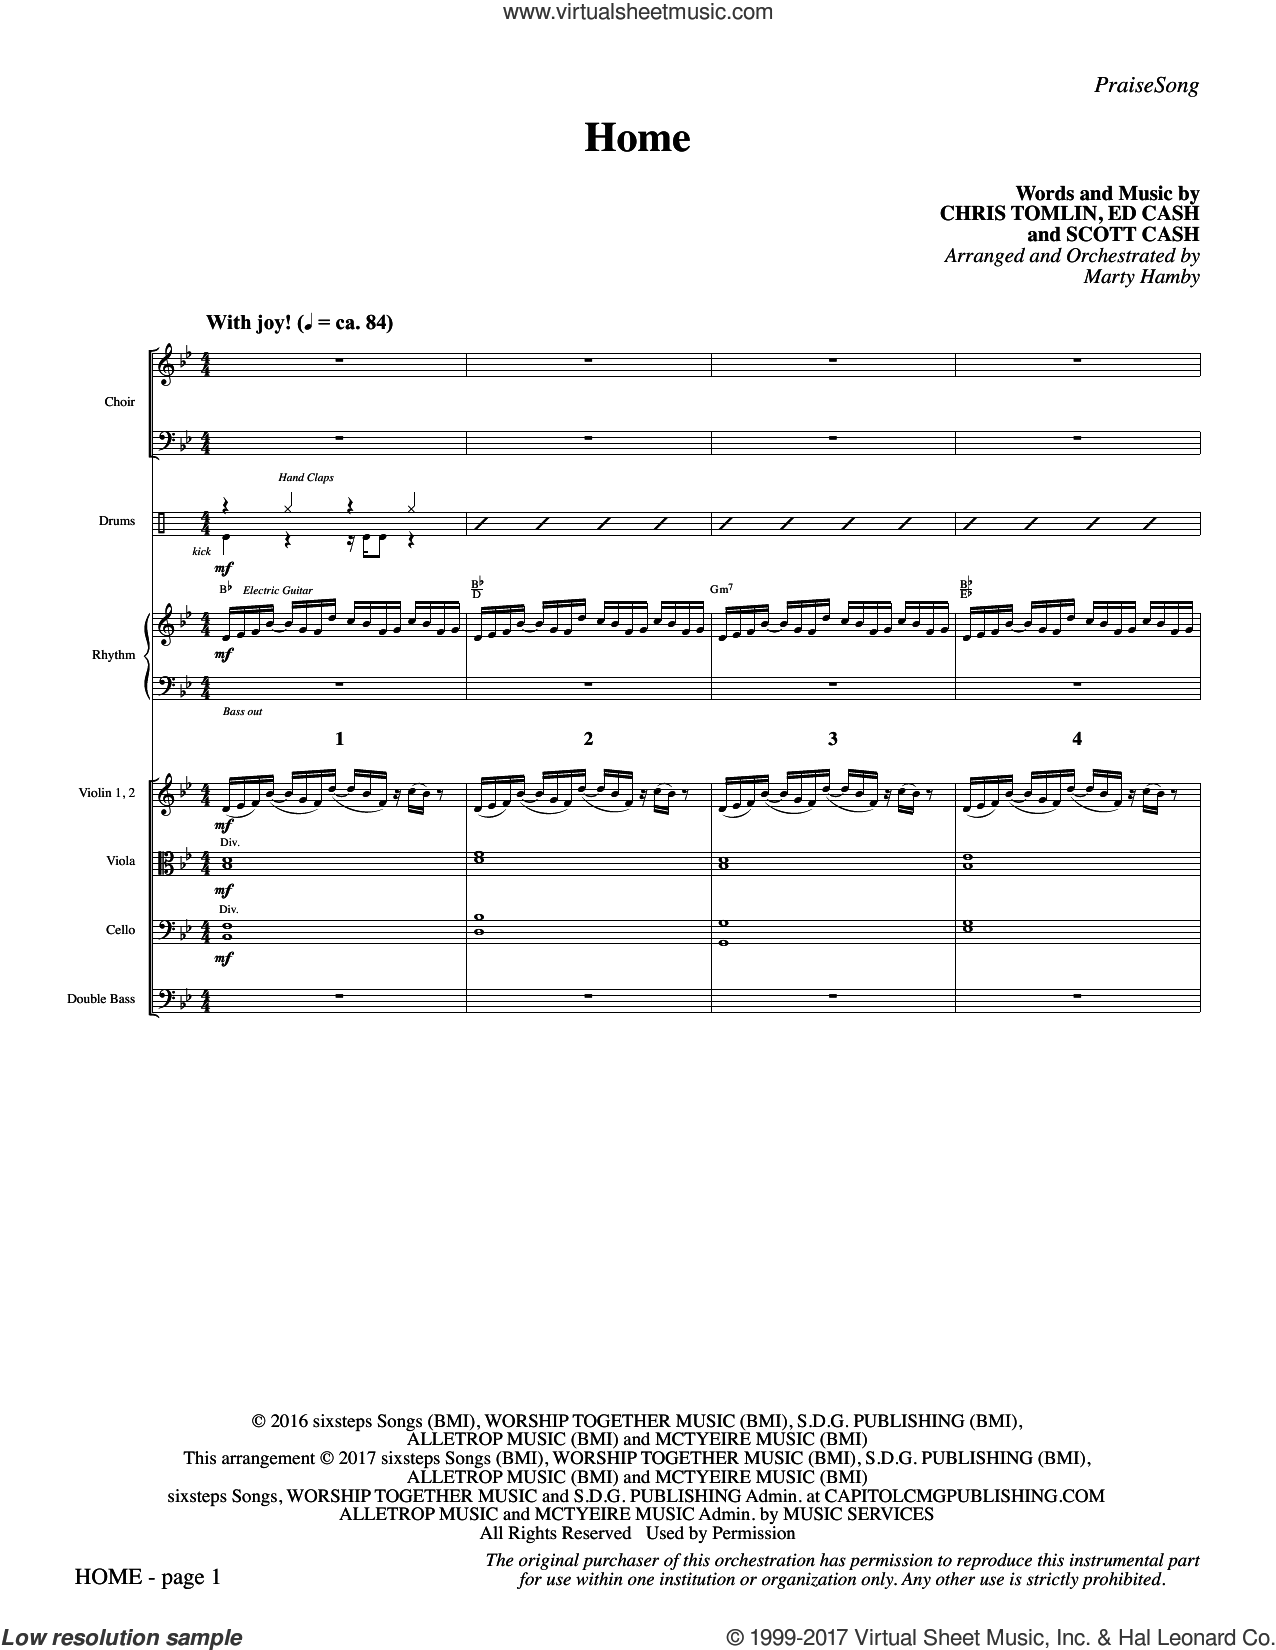 Home (COMPLETE) sheet music for orchestra/band by Marty Hamby, Chris Tomlin, Ed Cash and Scott Cash, intermediate skill level